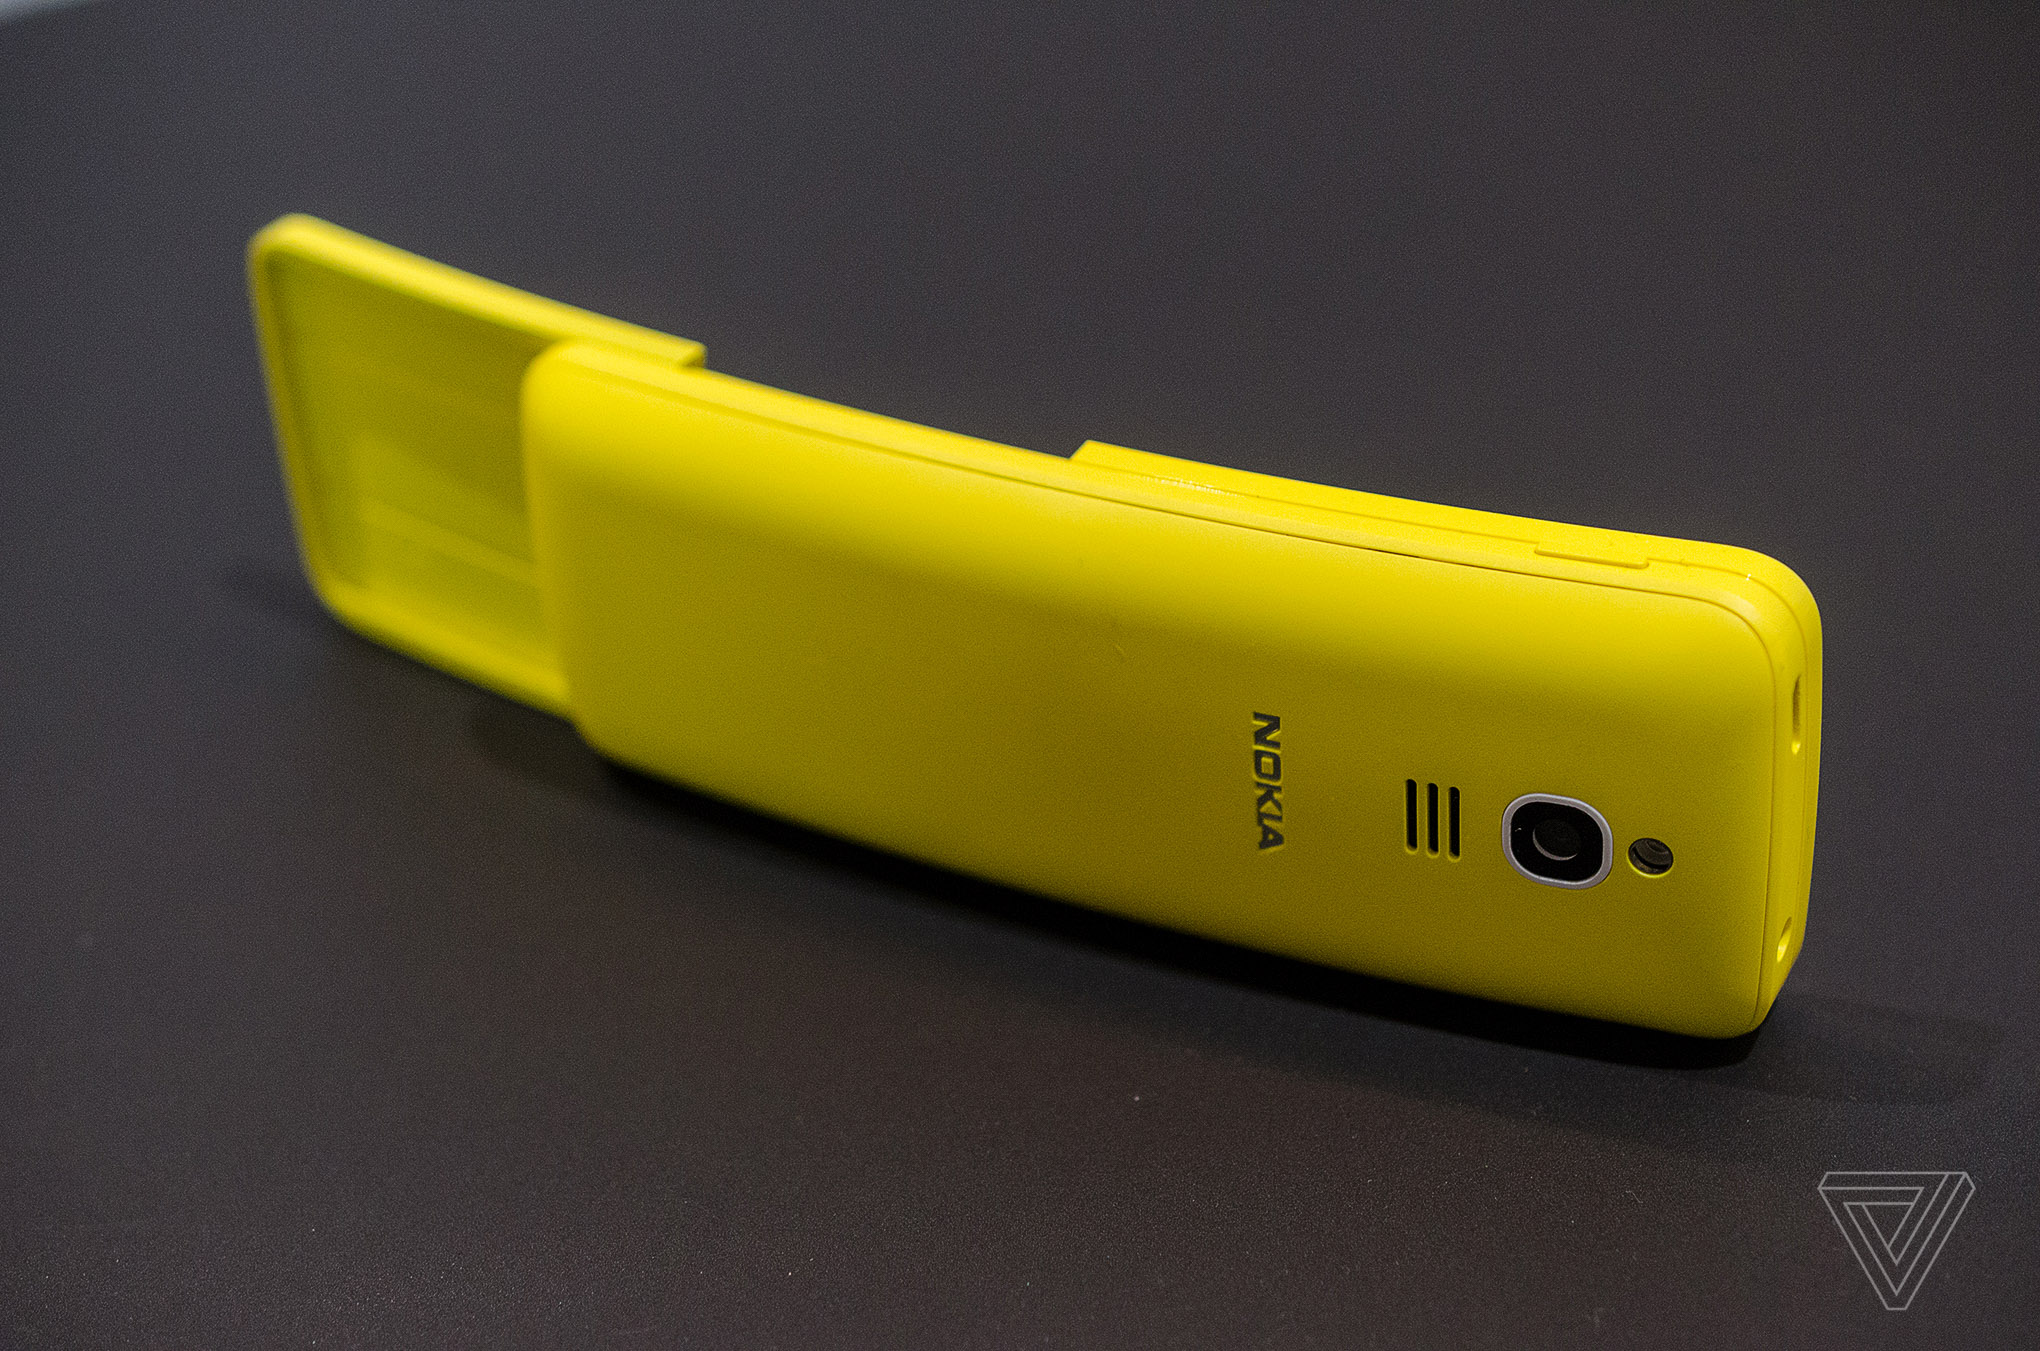 Nokias Banana Phone From The Matrix Is Back Verge Nokia Xl Yellow Photo By Tom Warren